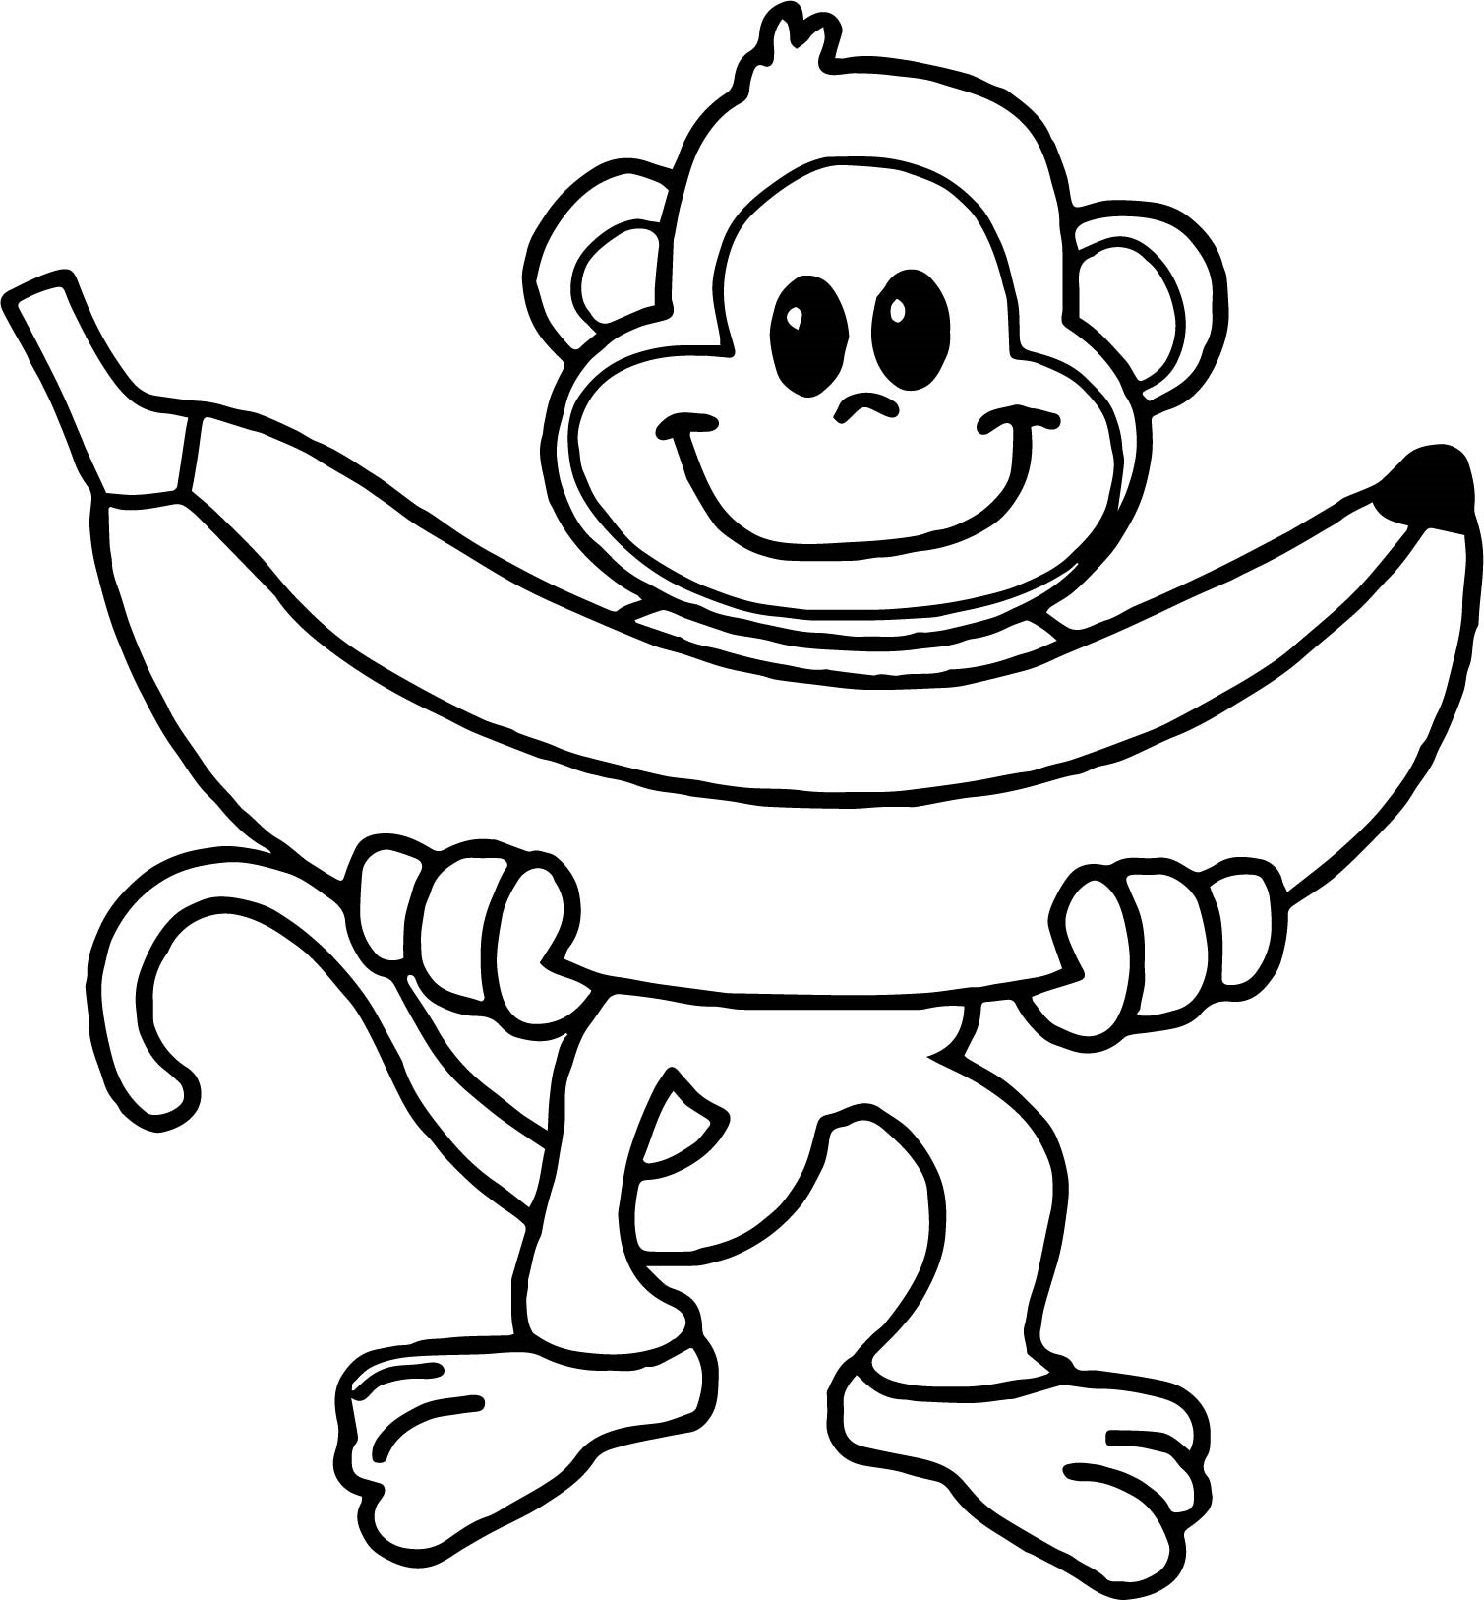 monkey pictures for coloring monkeys to download monkeys kids coloring pages for monkey coloring pictures